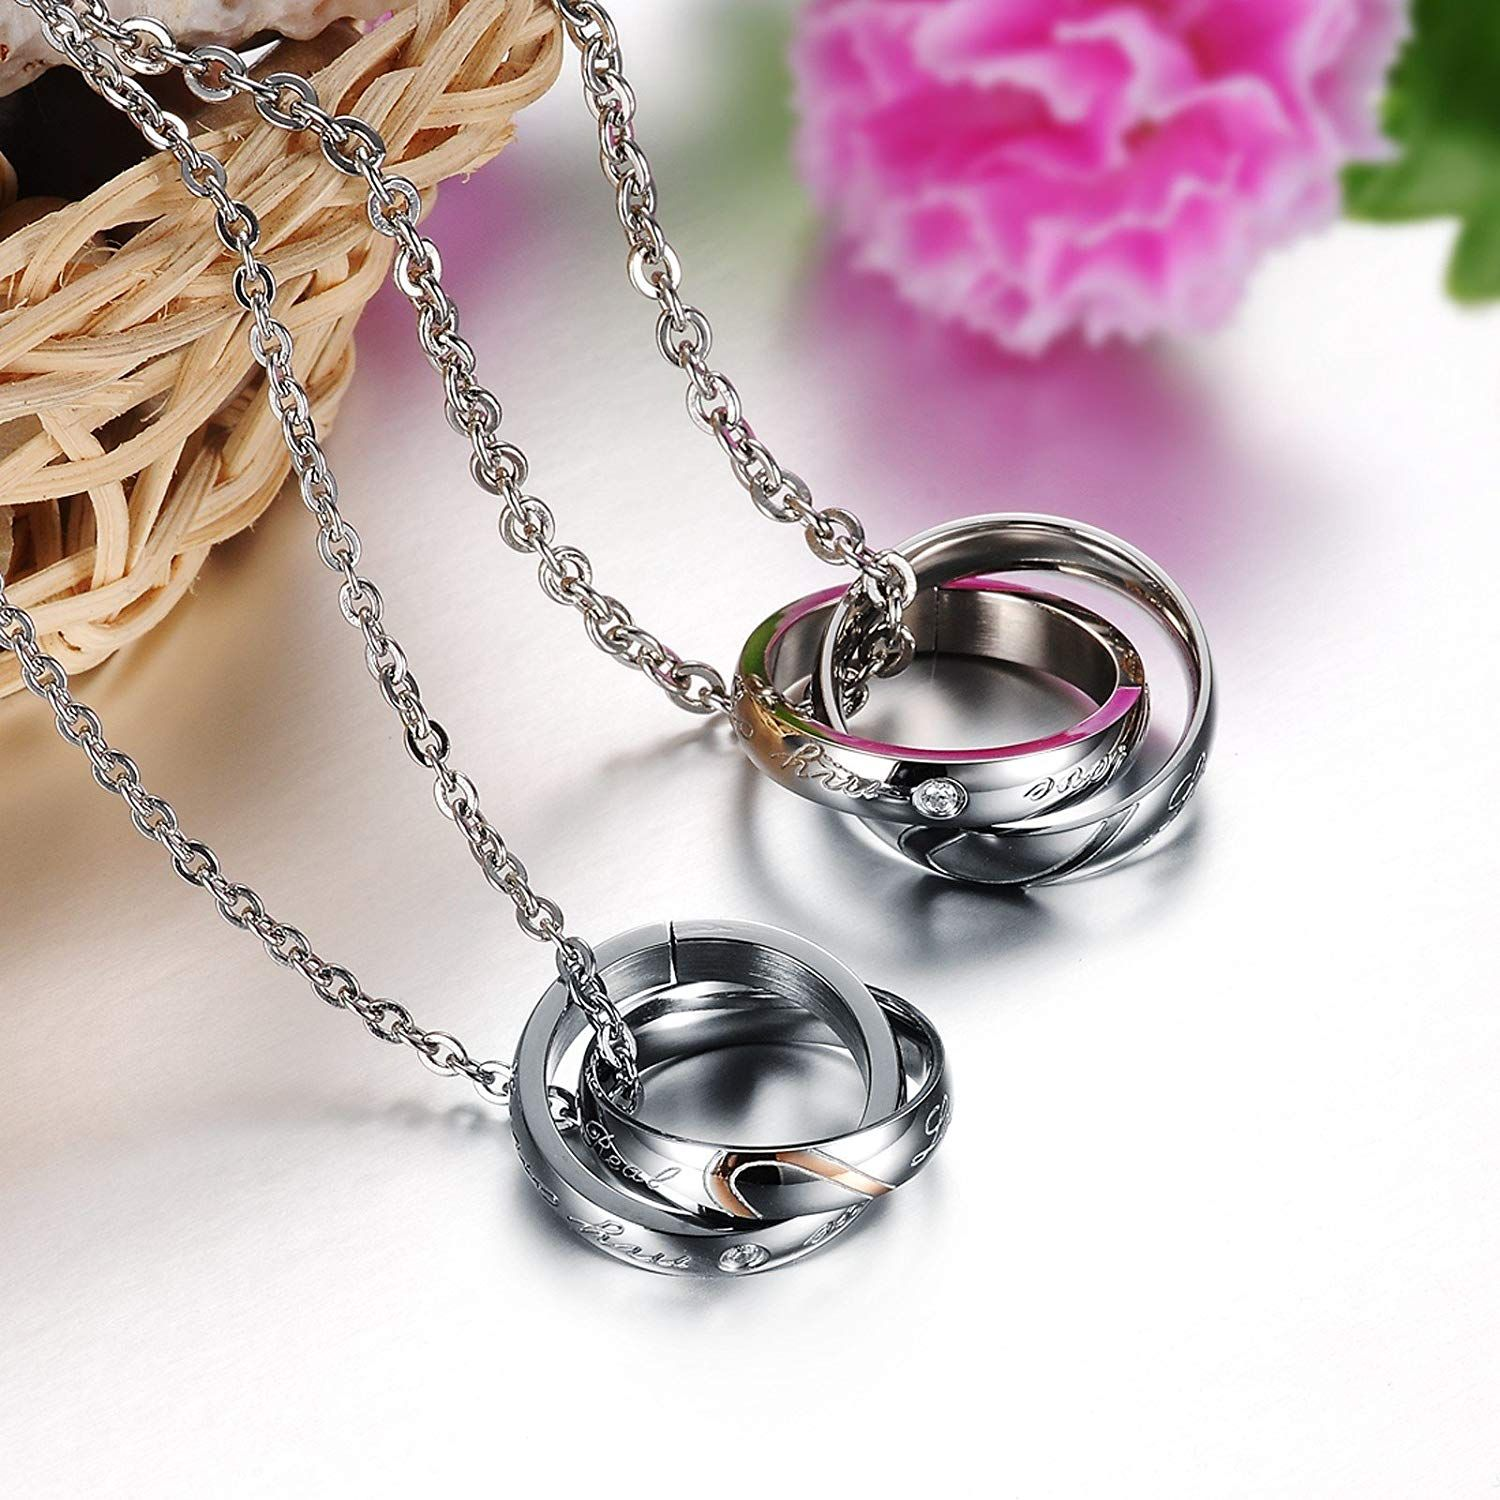 11th year steel wedding anniversary gifts for her